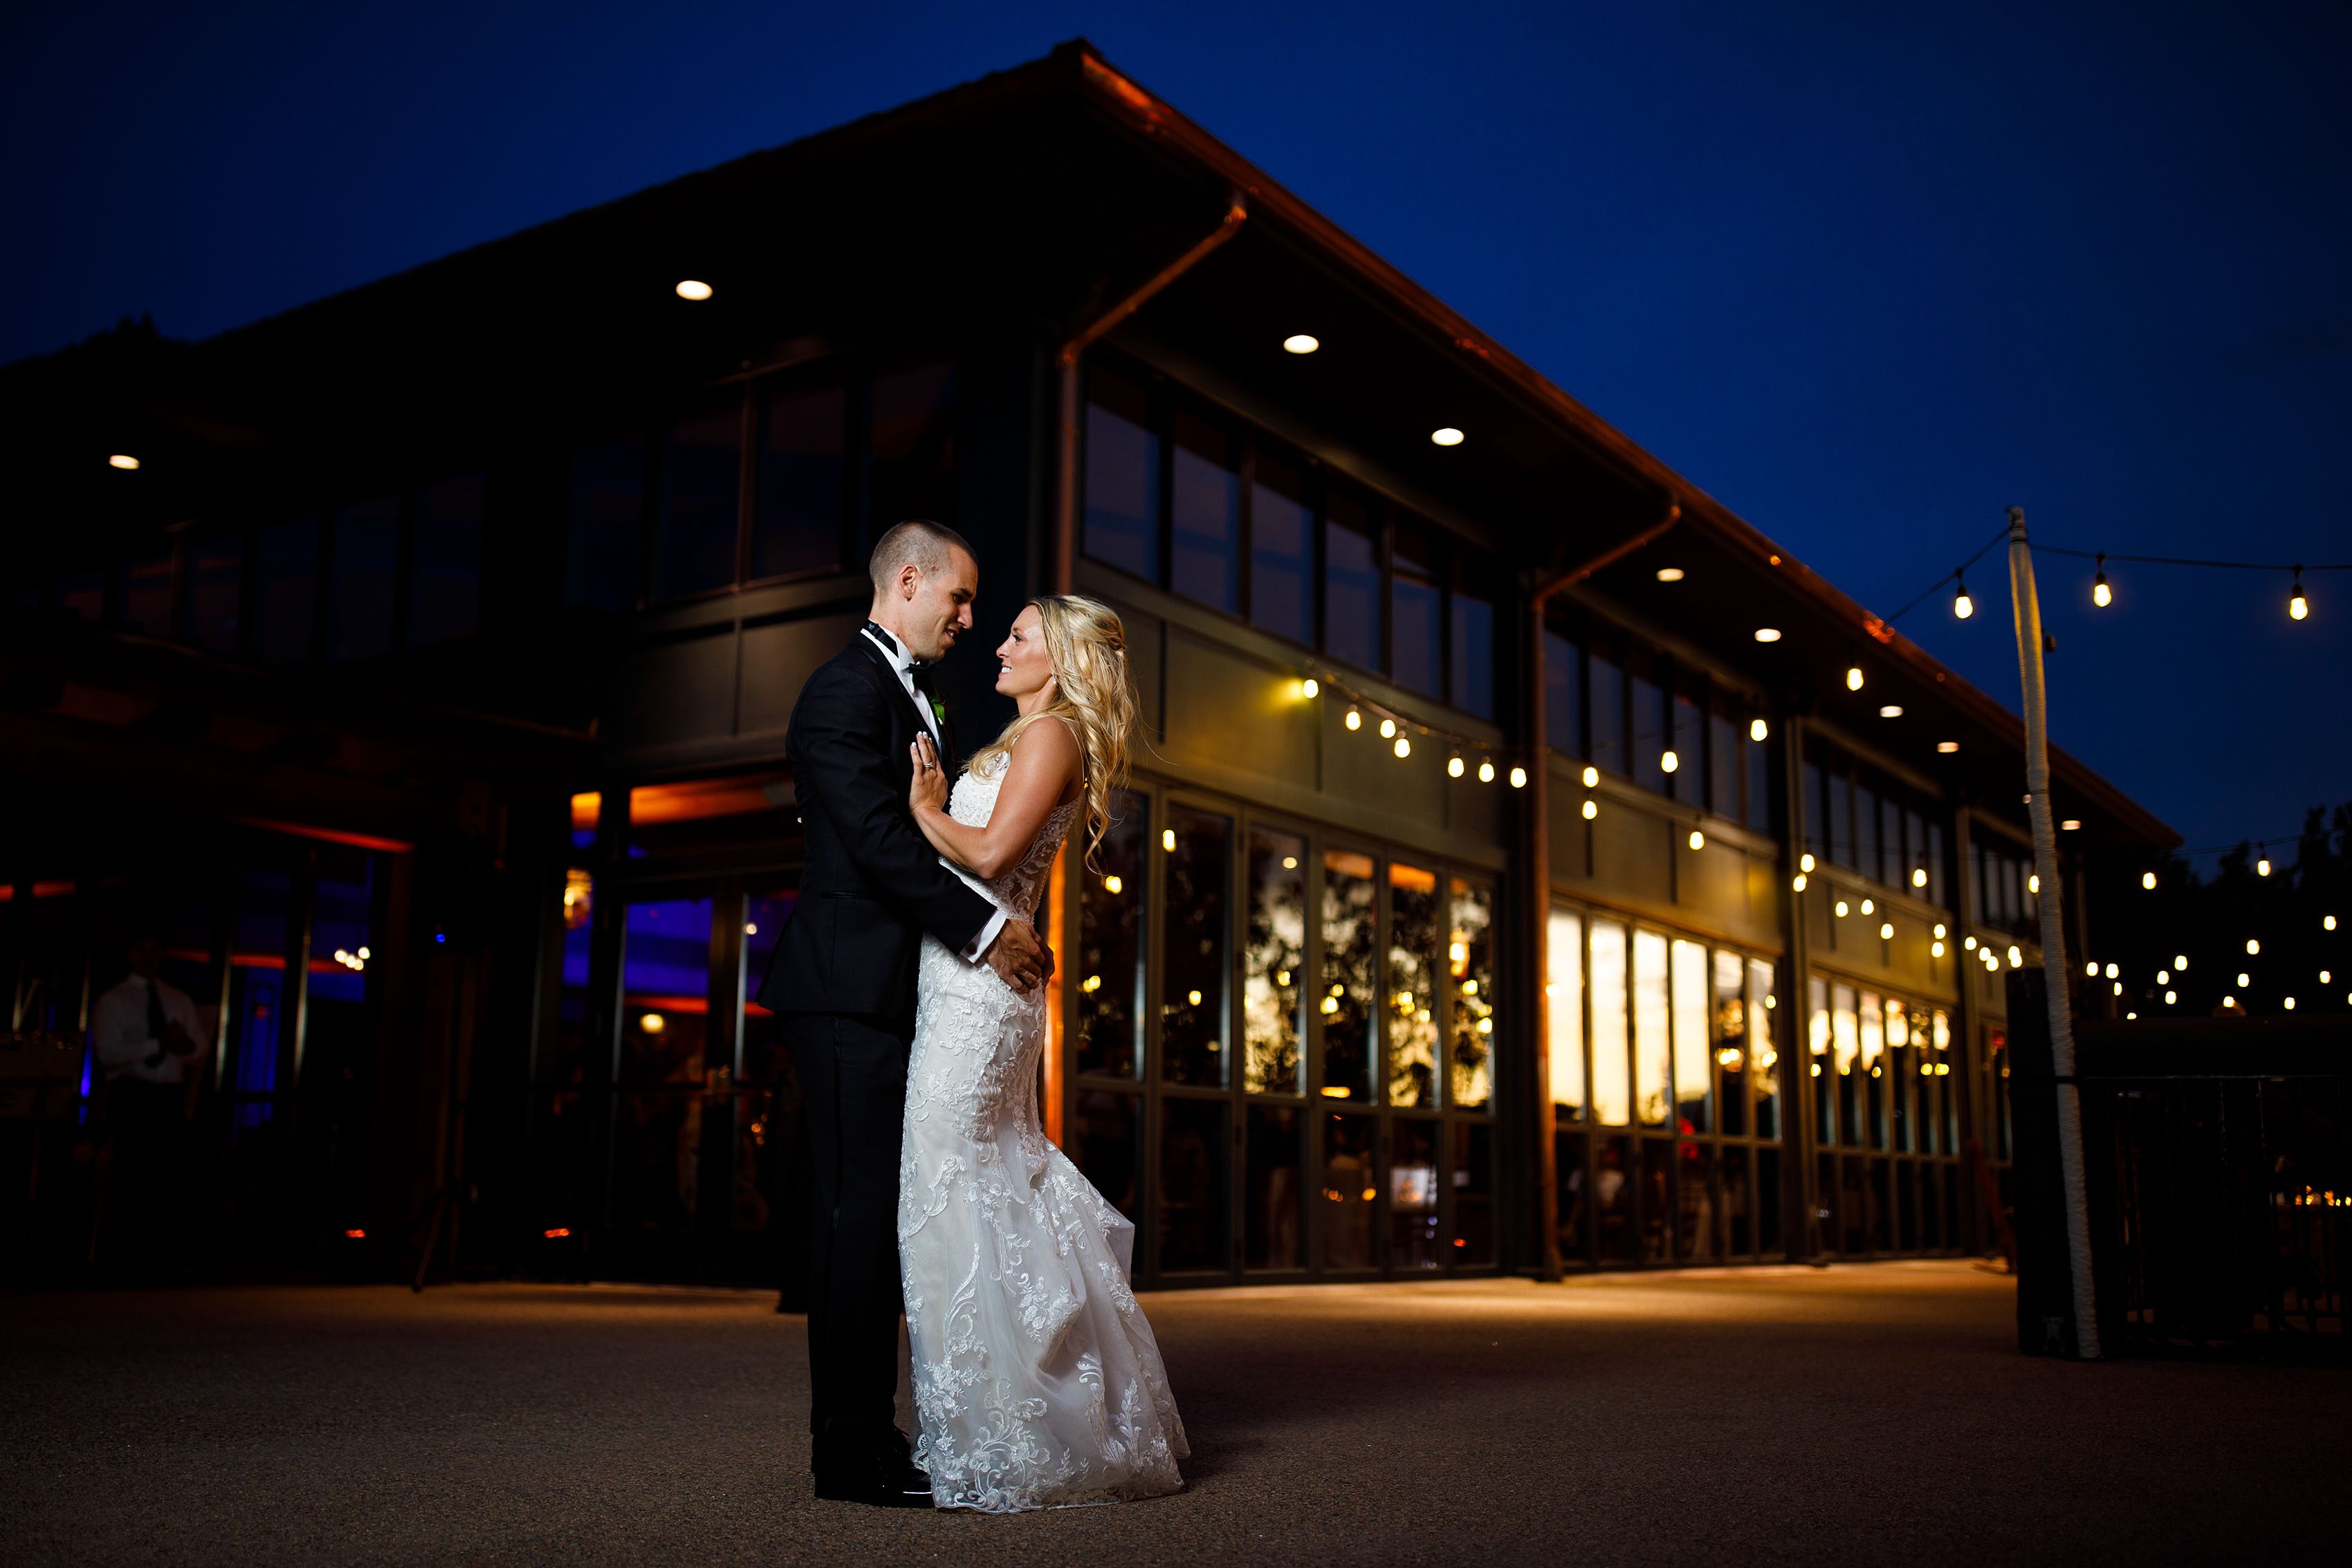 Bride and groom pose on the patio at Cheyenne Lodge at twilight